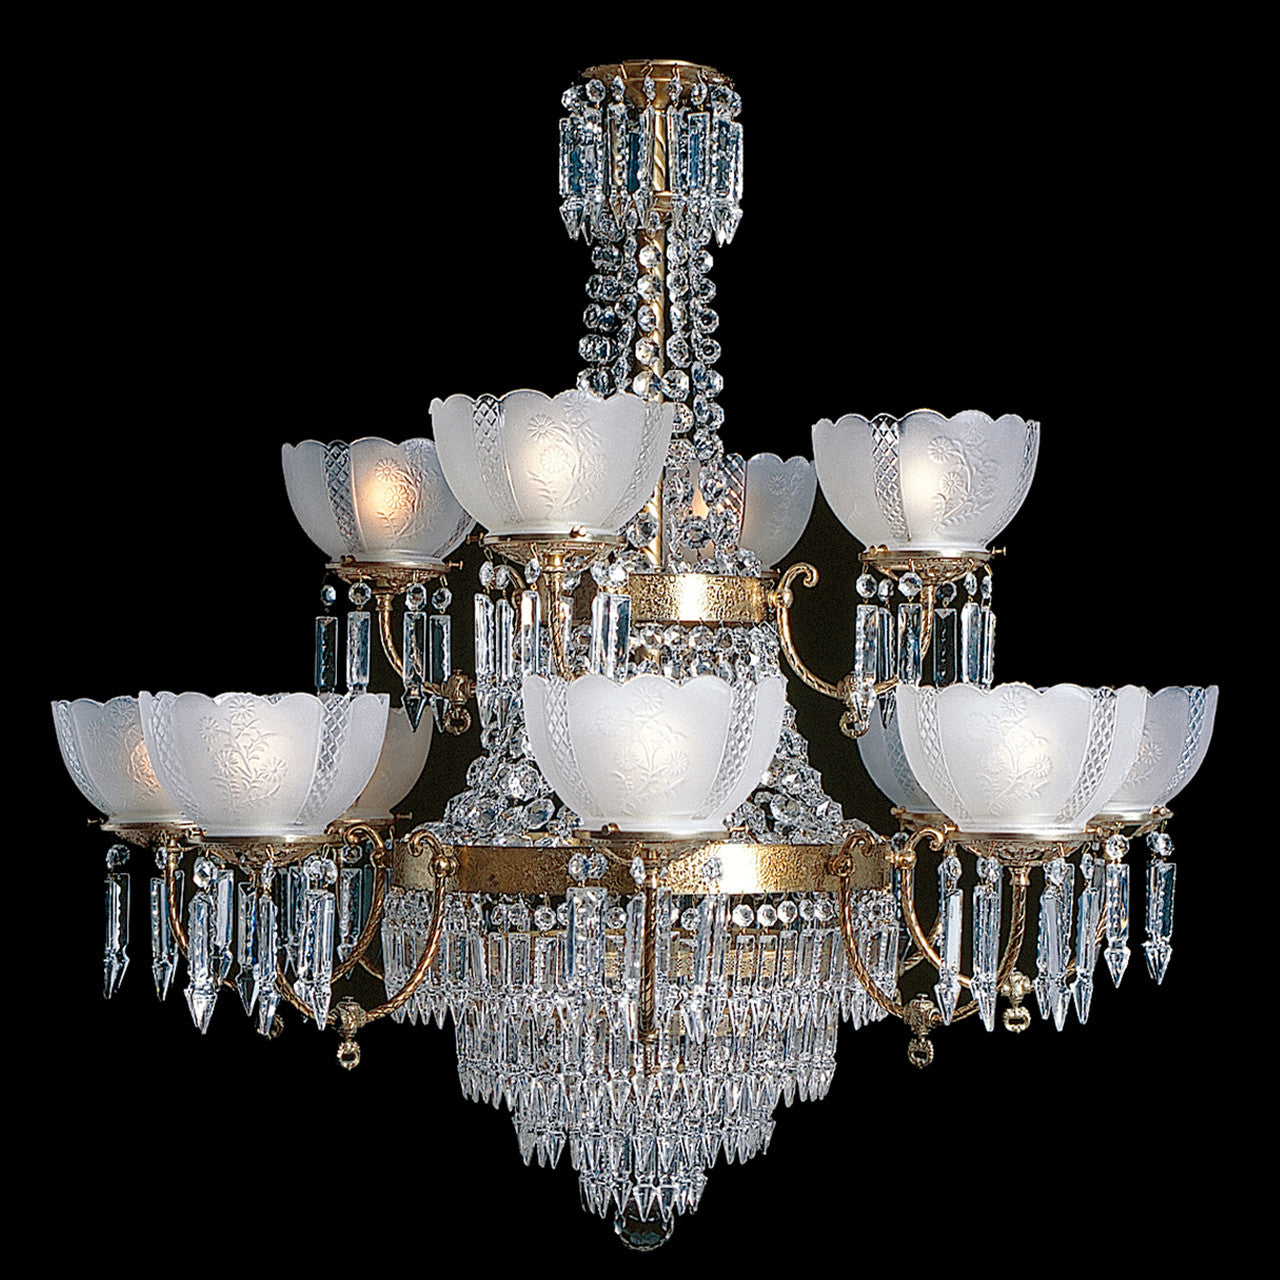 Charleston 84 12 light brass and crystal victorian chandelier 12 light large victorian chandelier charleston 84 arubaitofo Gallery